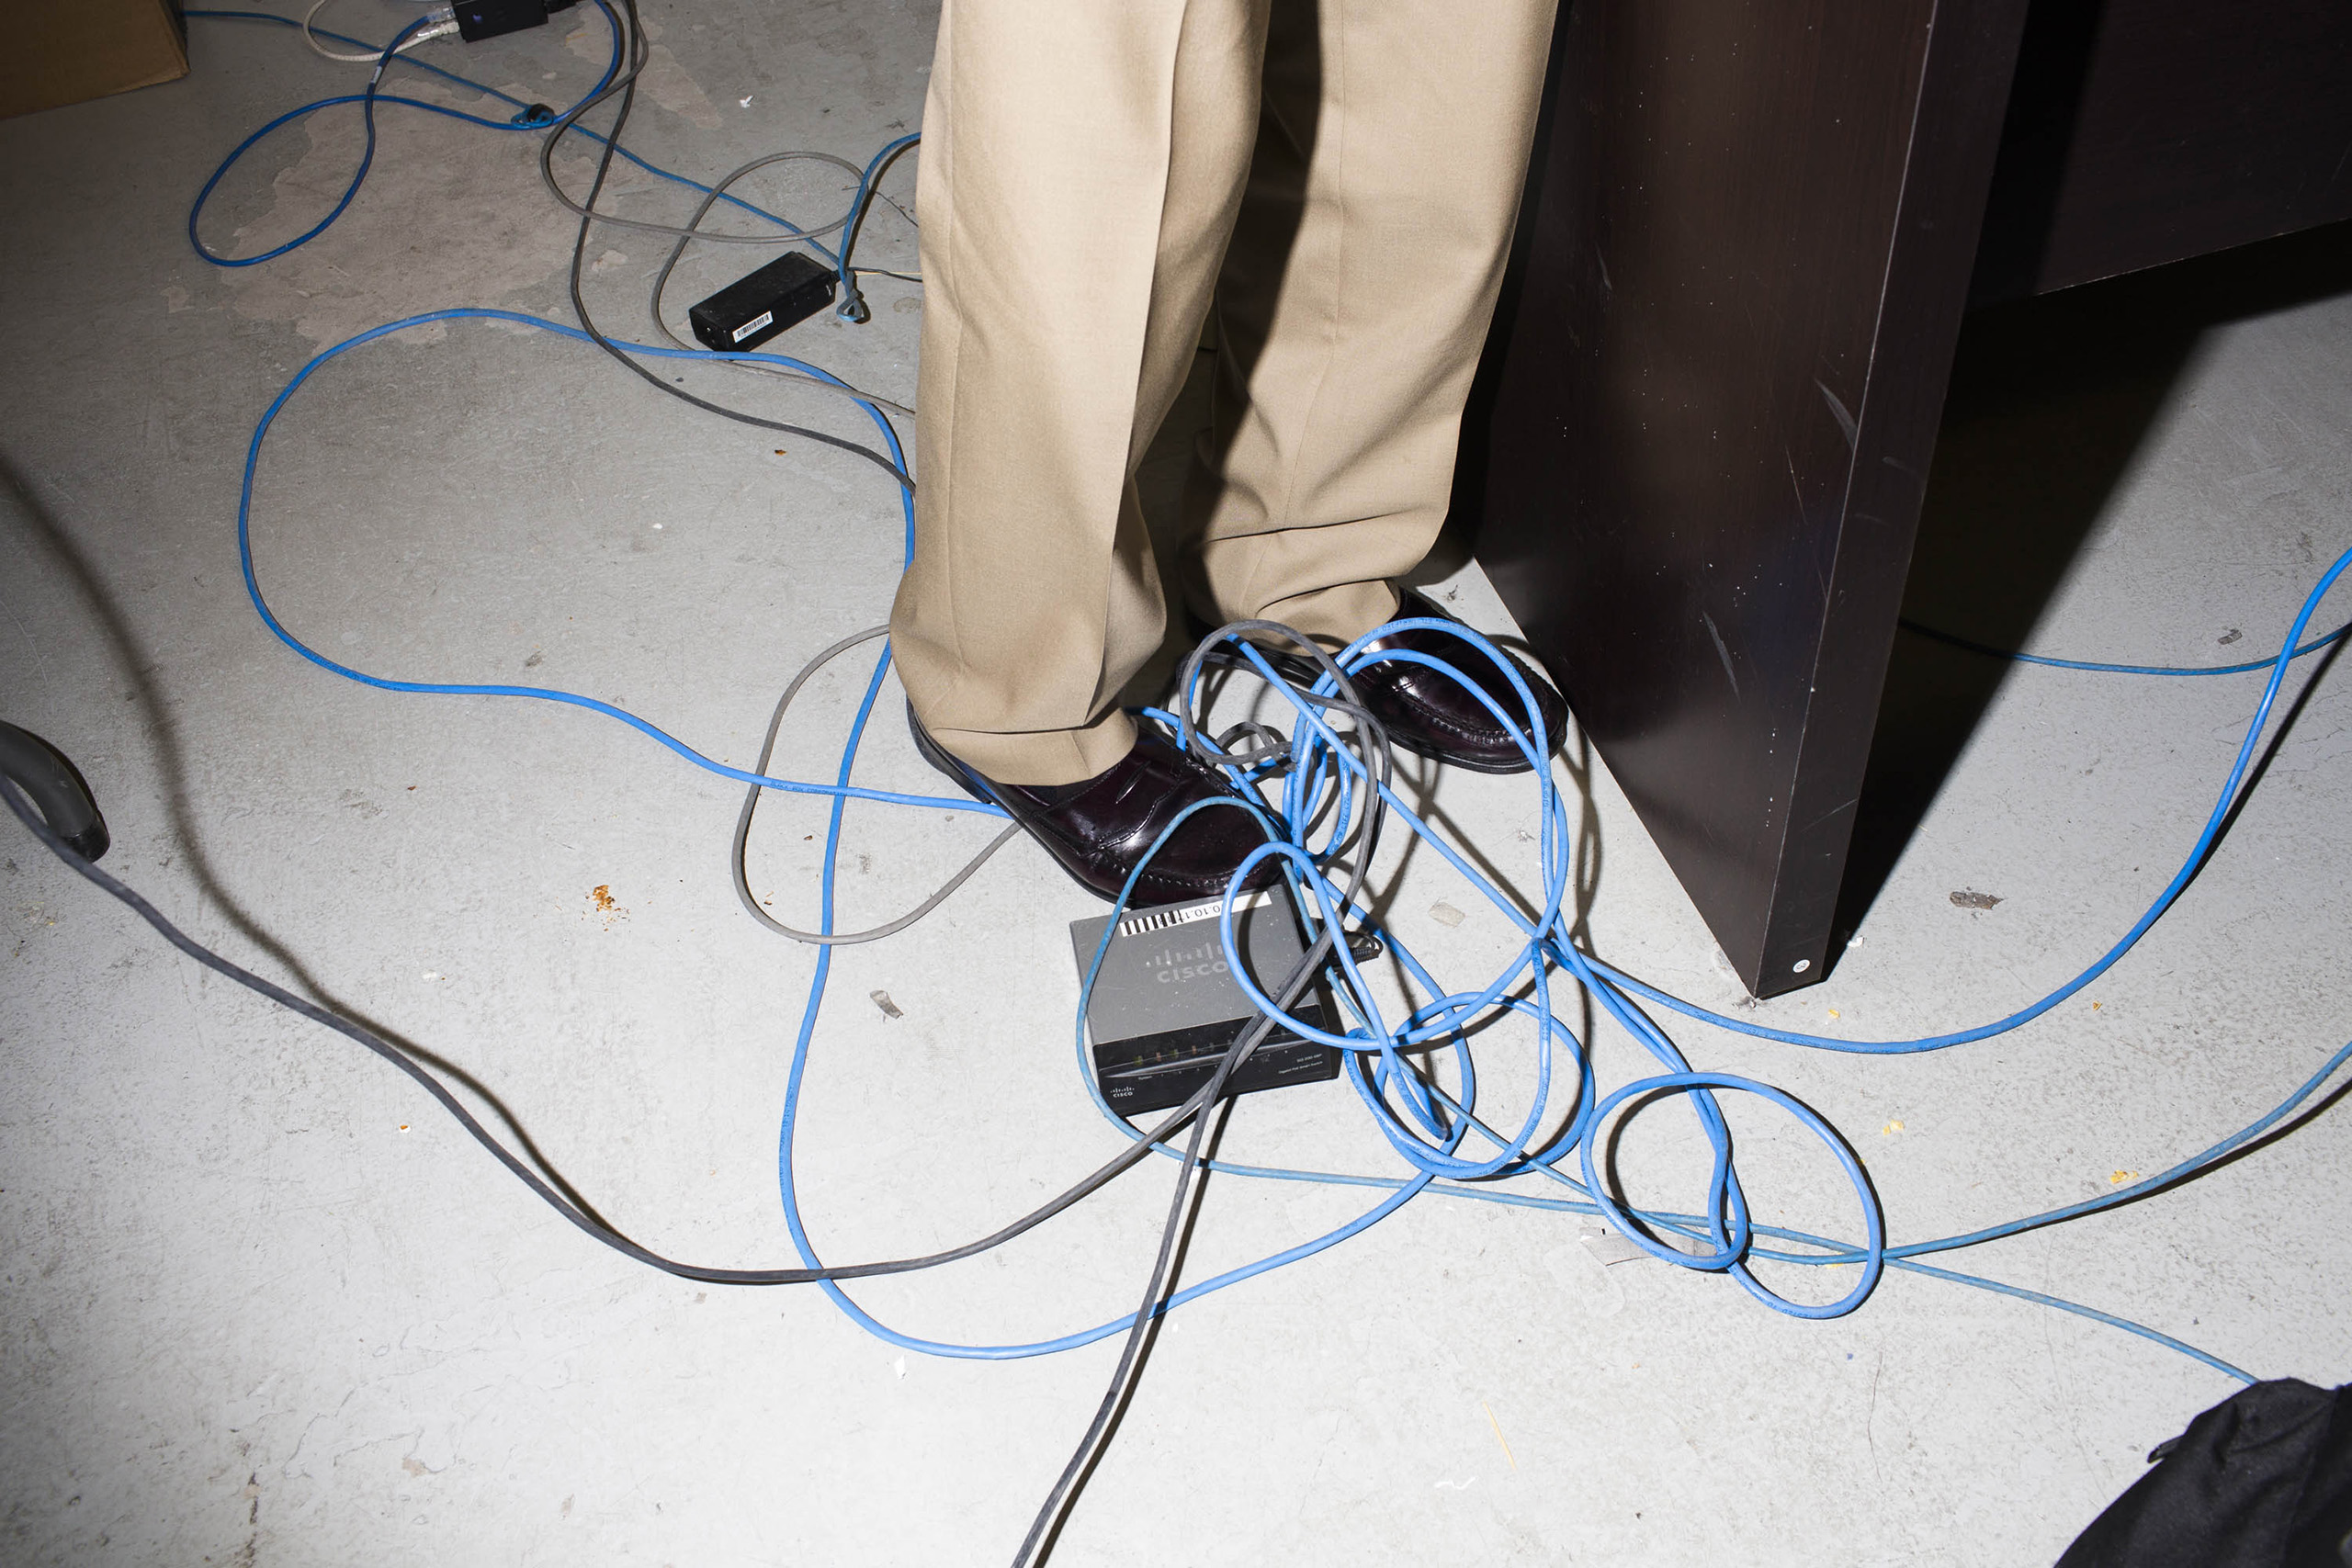 electrical cords inside the campaign headquarters of Donald Trump on May 24, 2016, in Trump Tower in New York City.